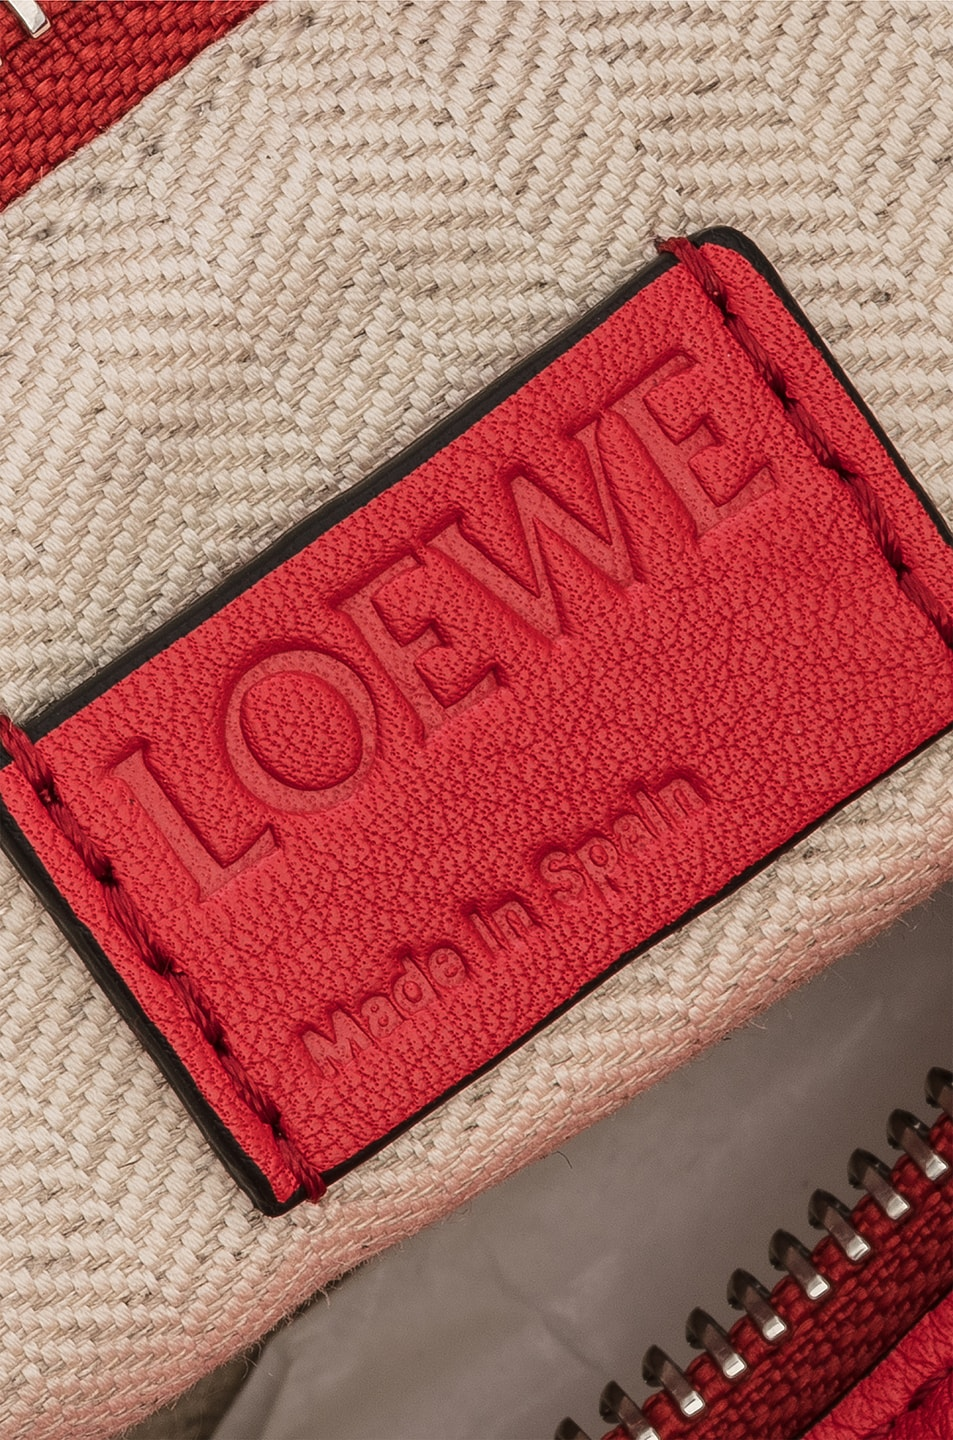 Image 7 of Loewe Puzzle Small Bag in Scarlet Red